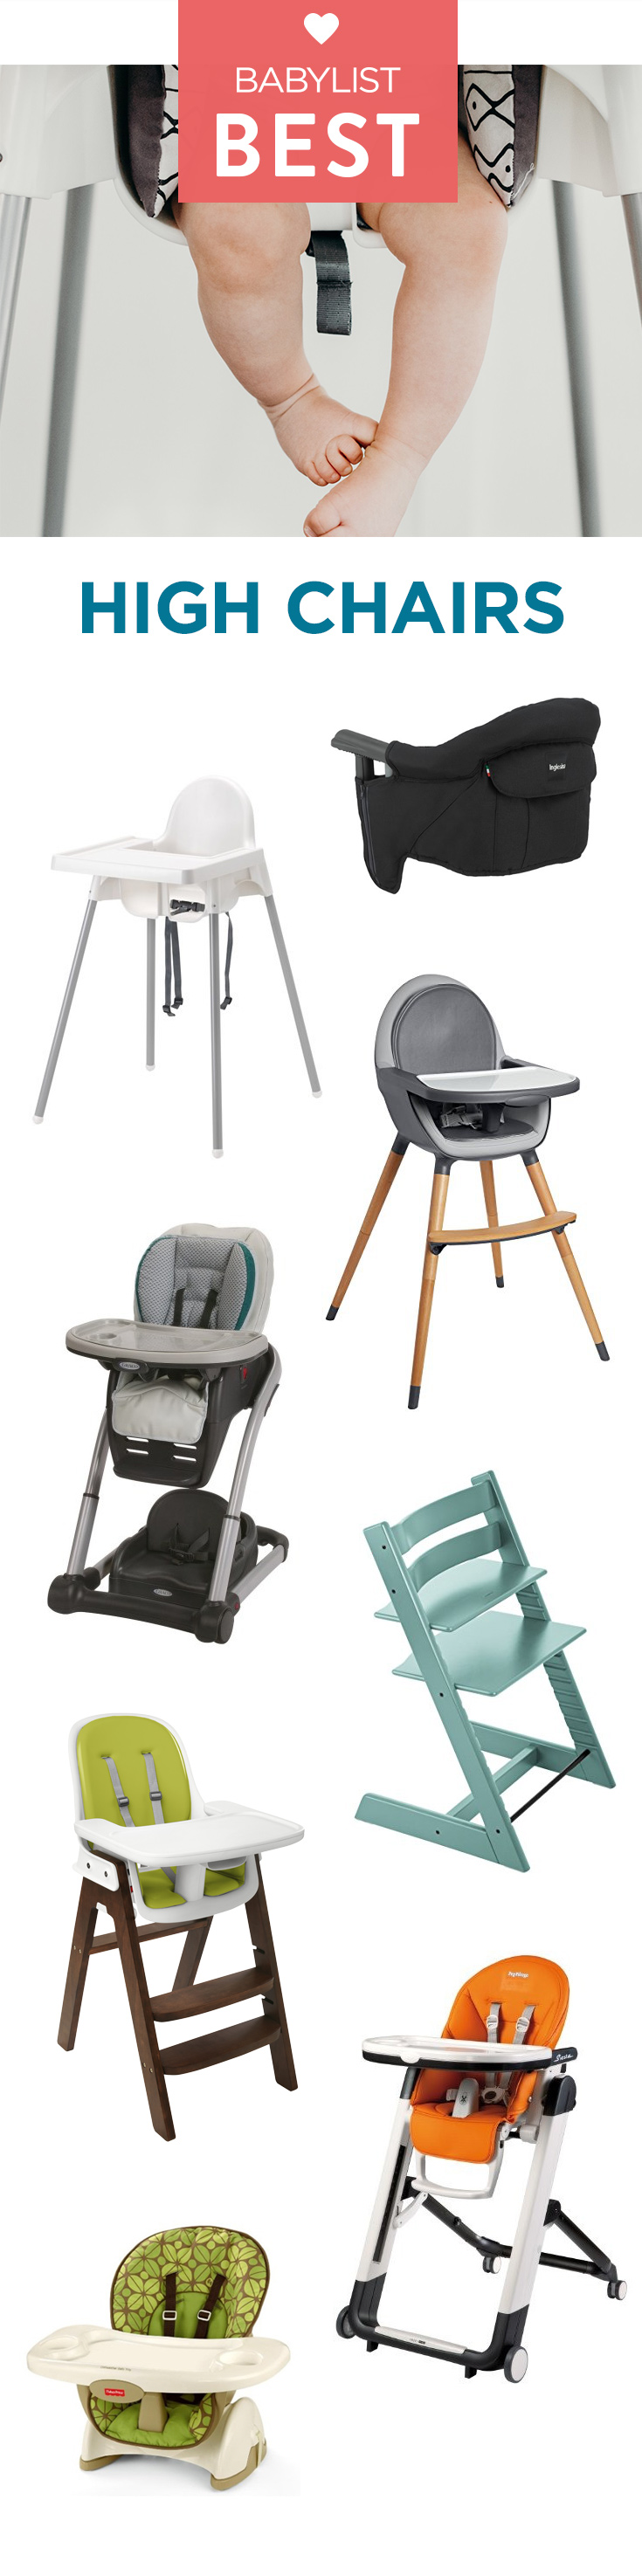 High Chairs Run The Gamut When It Comes To Price And Features.